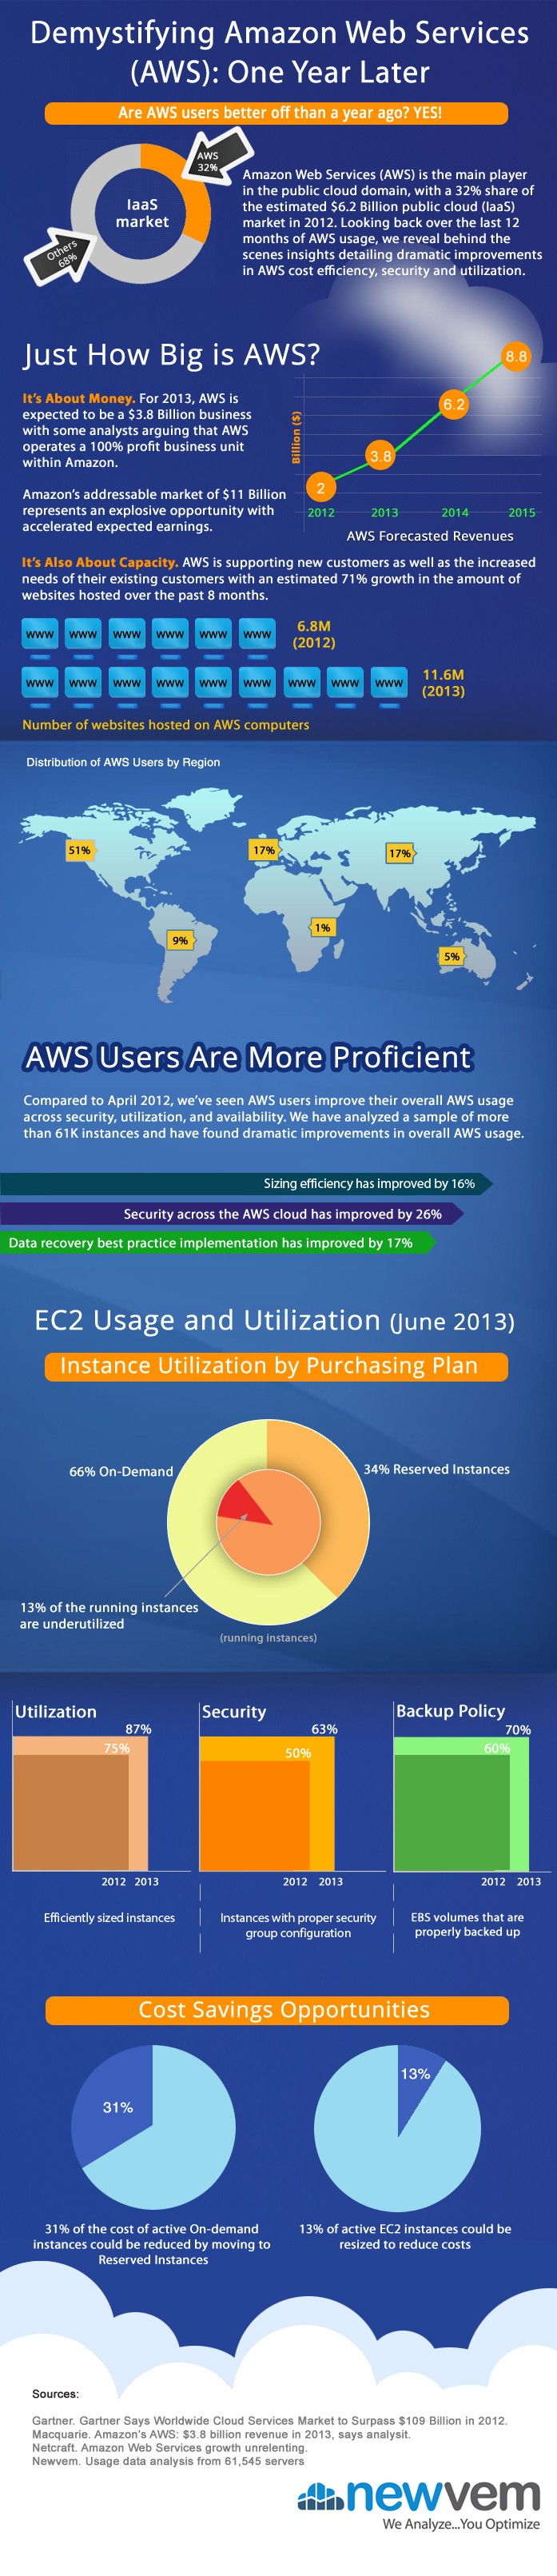 AWS-Cloud-Usage-Improvements